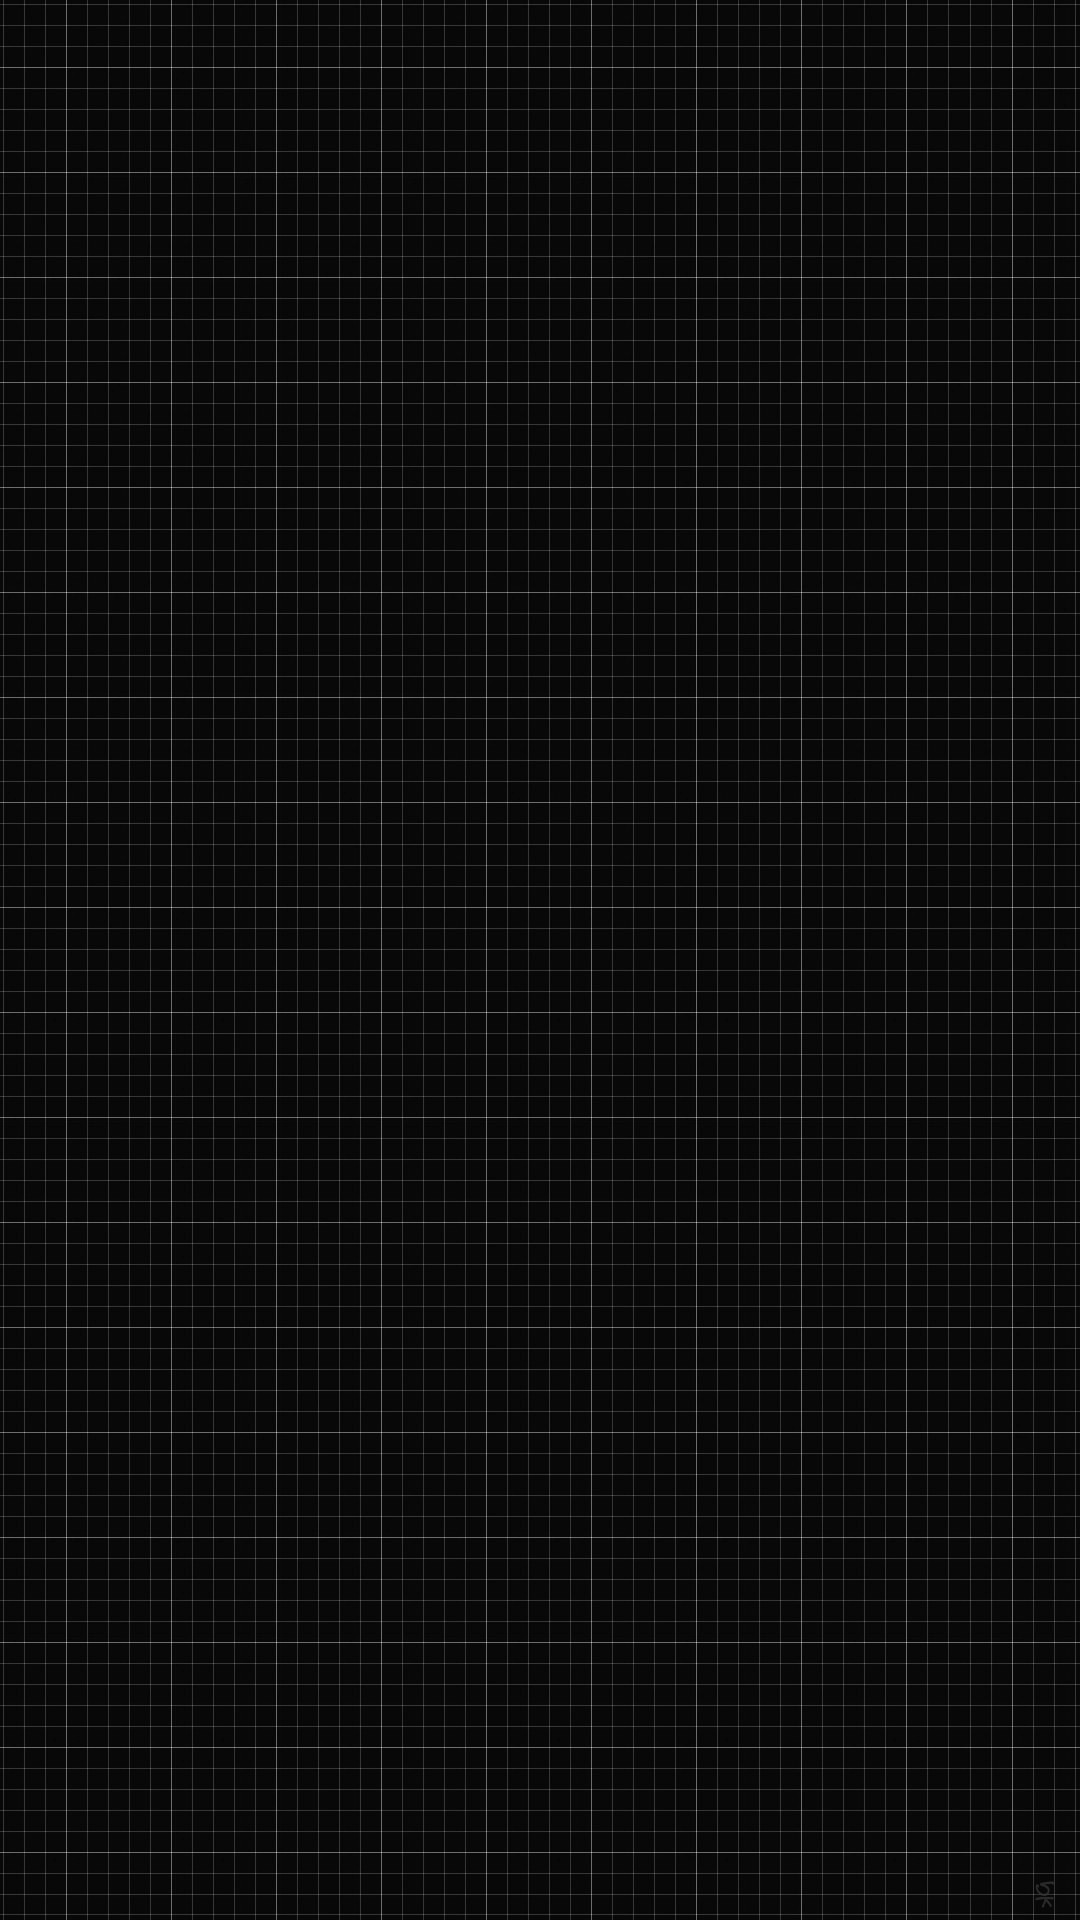 Res: 1080x1920, iPhone 8 Wallpaper Abstract Awesome iPhone 6 Grid Wallpaper 80 Images Of  iPhone 8 Wallpaper Abstract